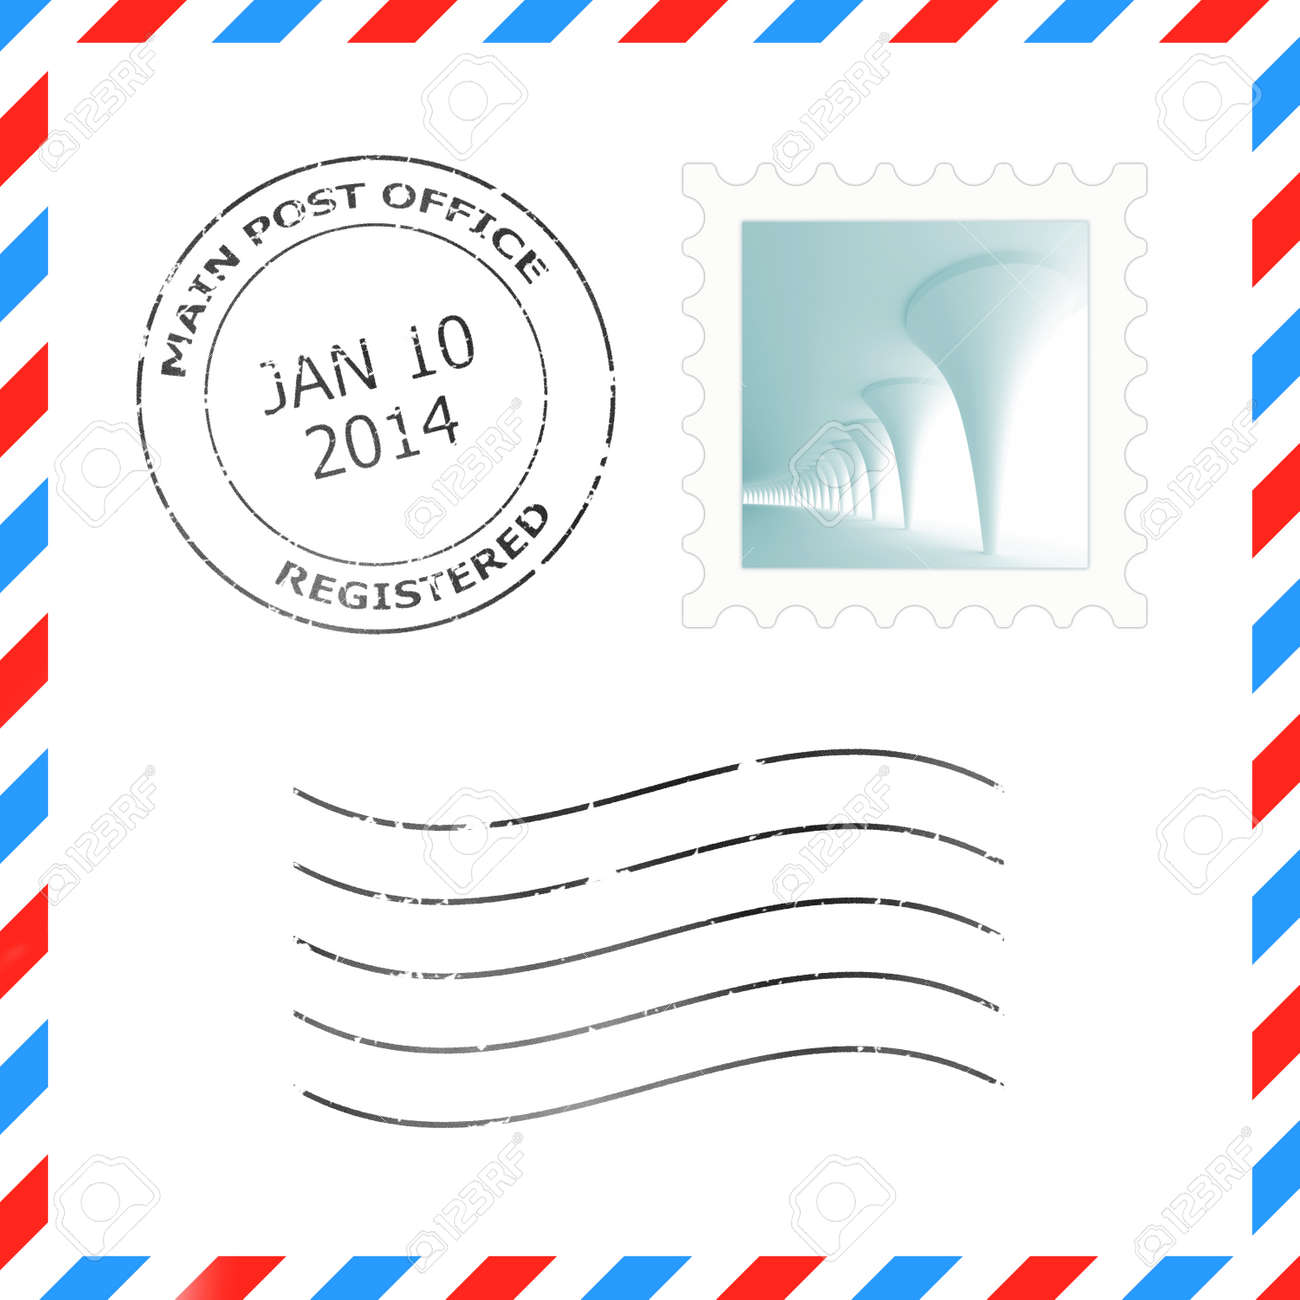 Postage Stamp And Postmark For A Letter Envelope Illustrations Stock